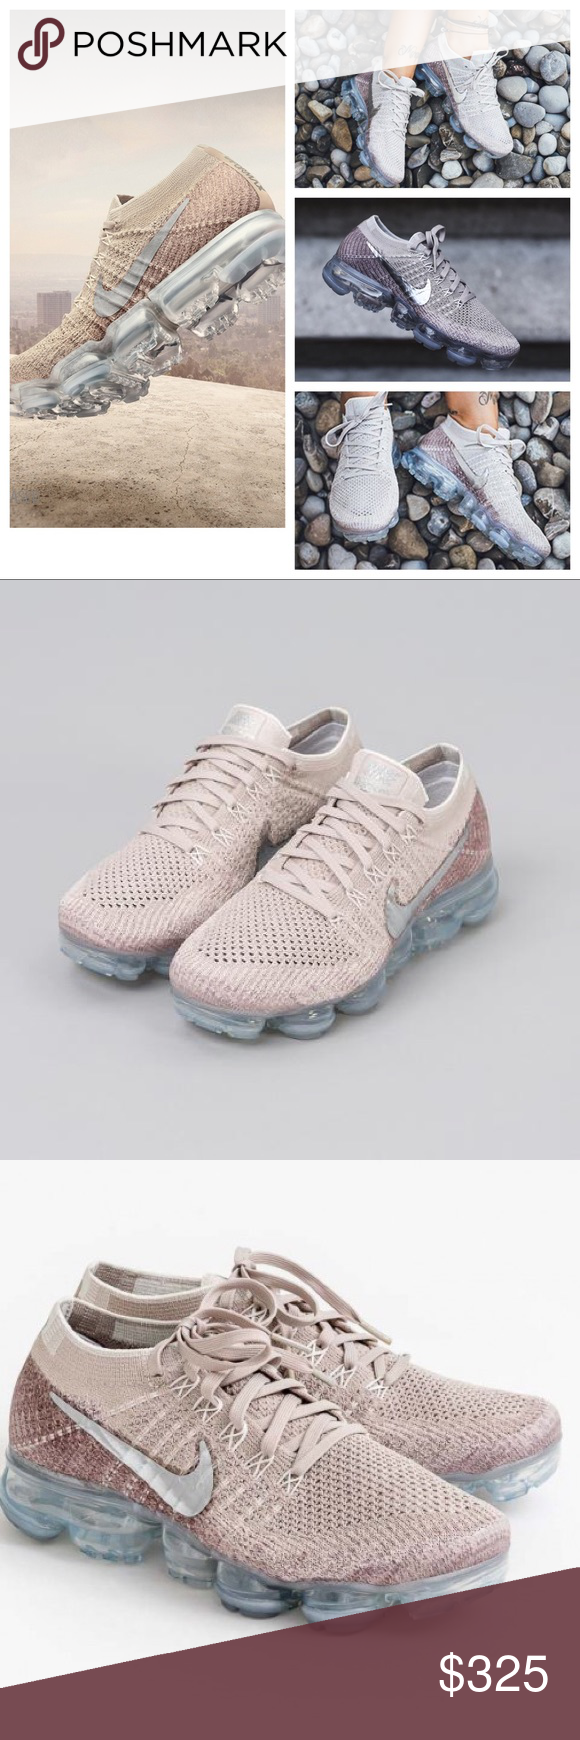 689e6eb7c2 NIB Sold Out Nike VaporMax in String Blush Chrome Mixing hues of tan and  pink to